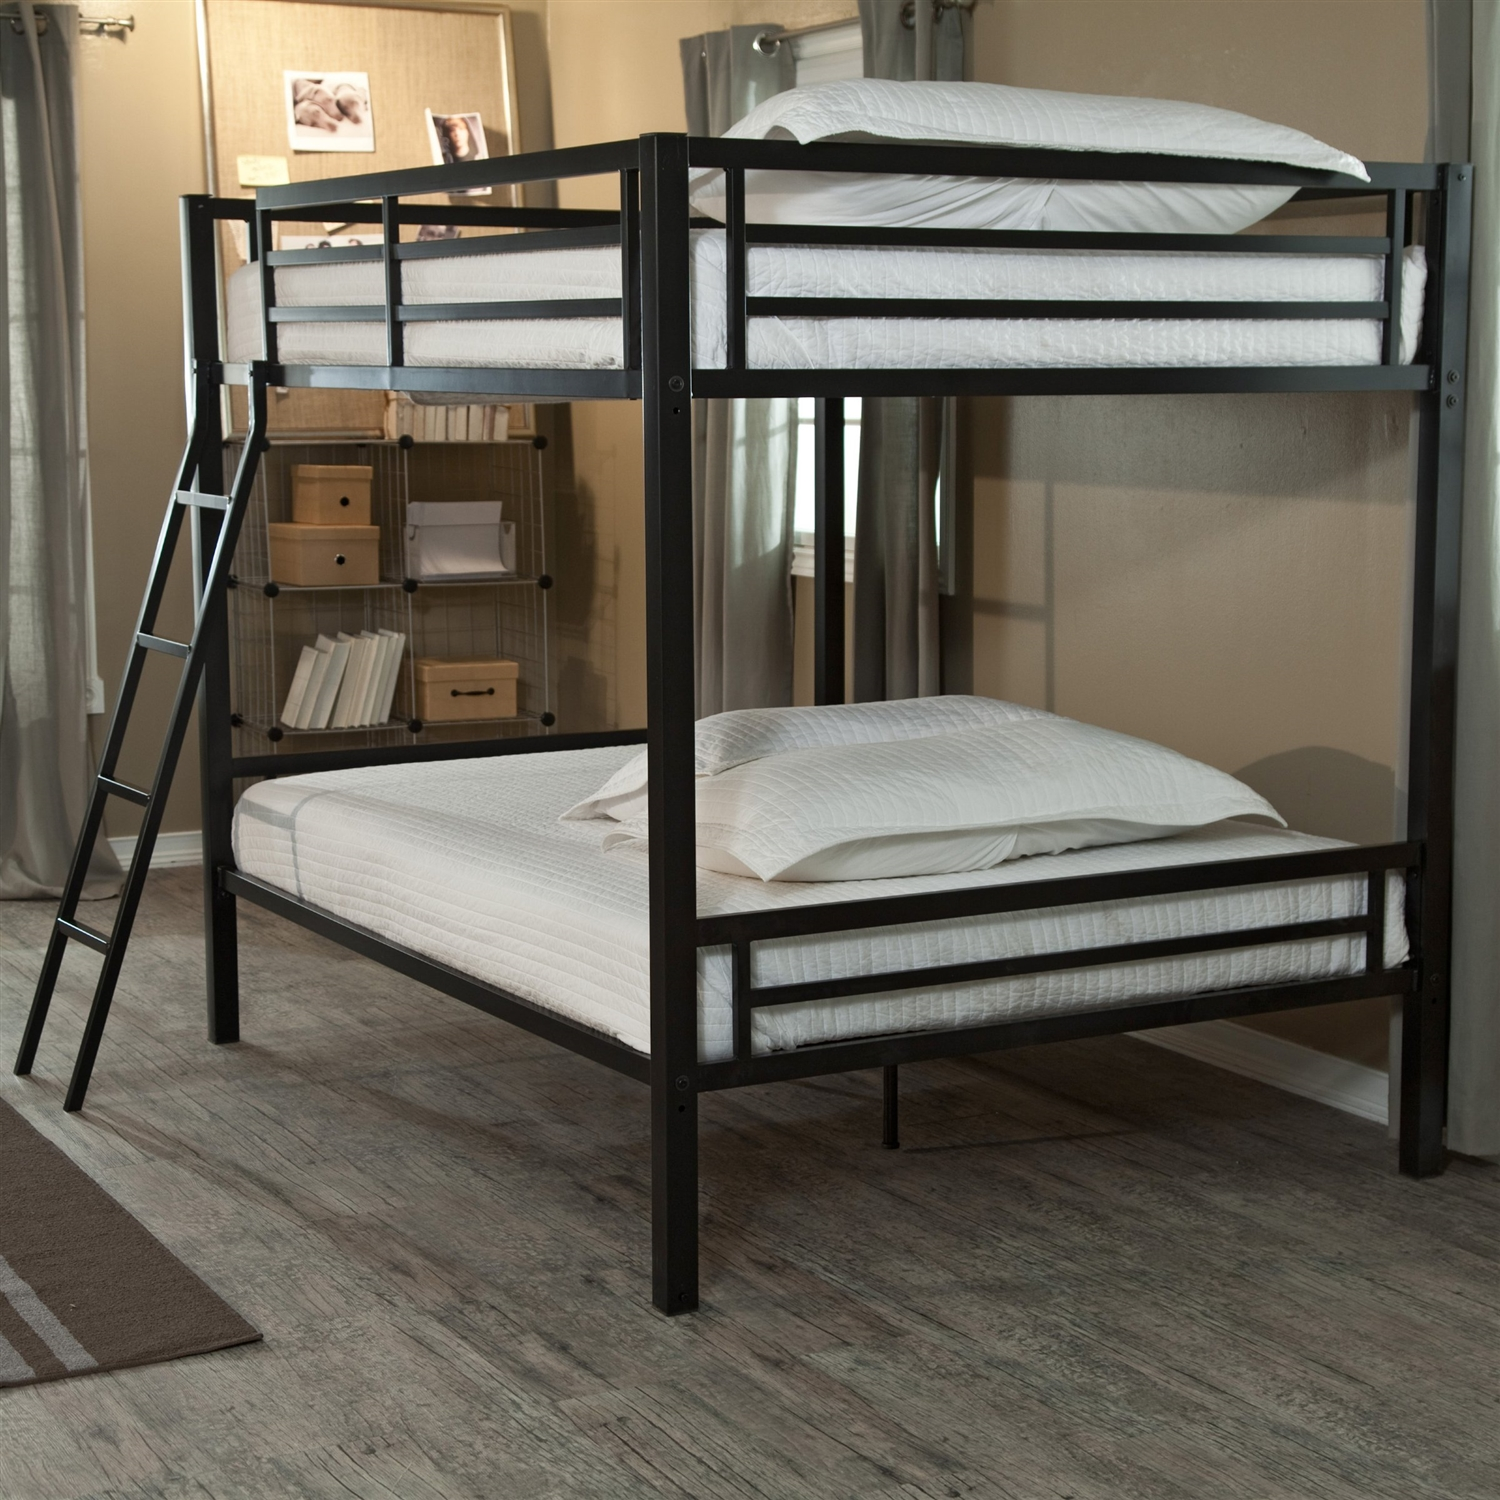 Full Over Full Bunk Bed With Ladder And Safety Rails In Black Metal